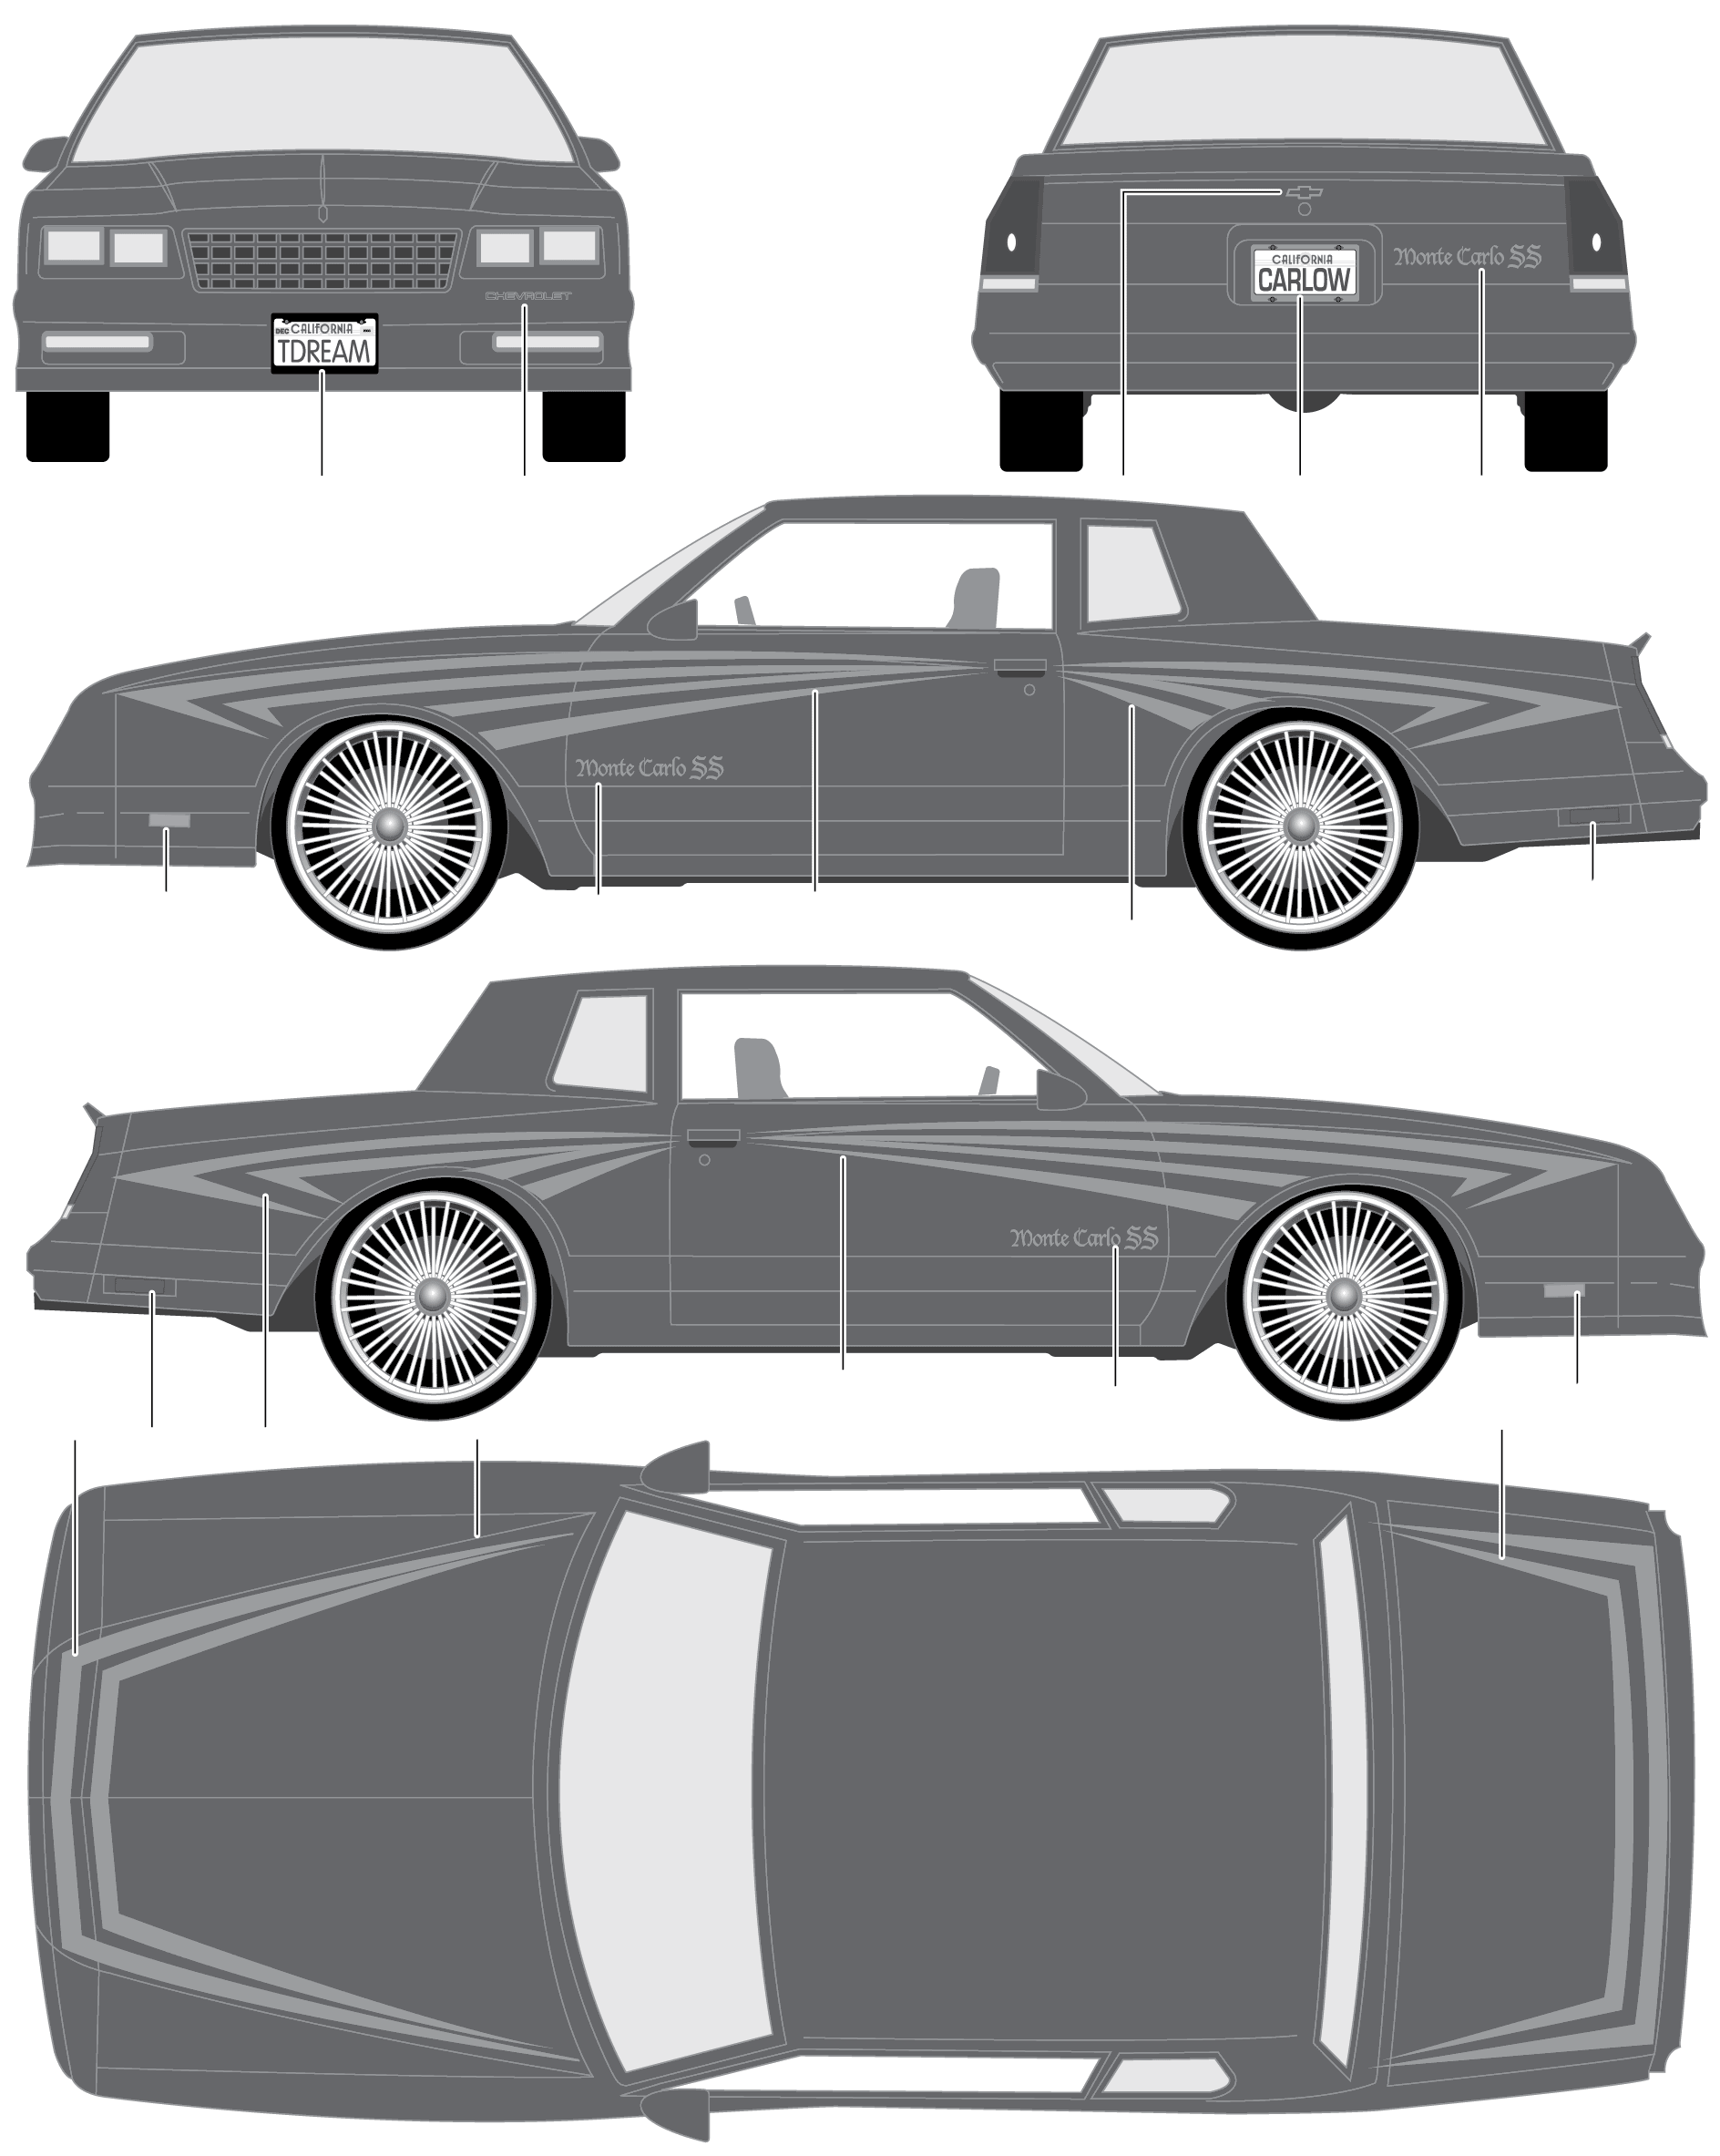 1986 chevrolet monte carlo ss coupe blueprints free outlines